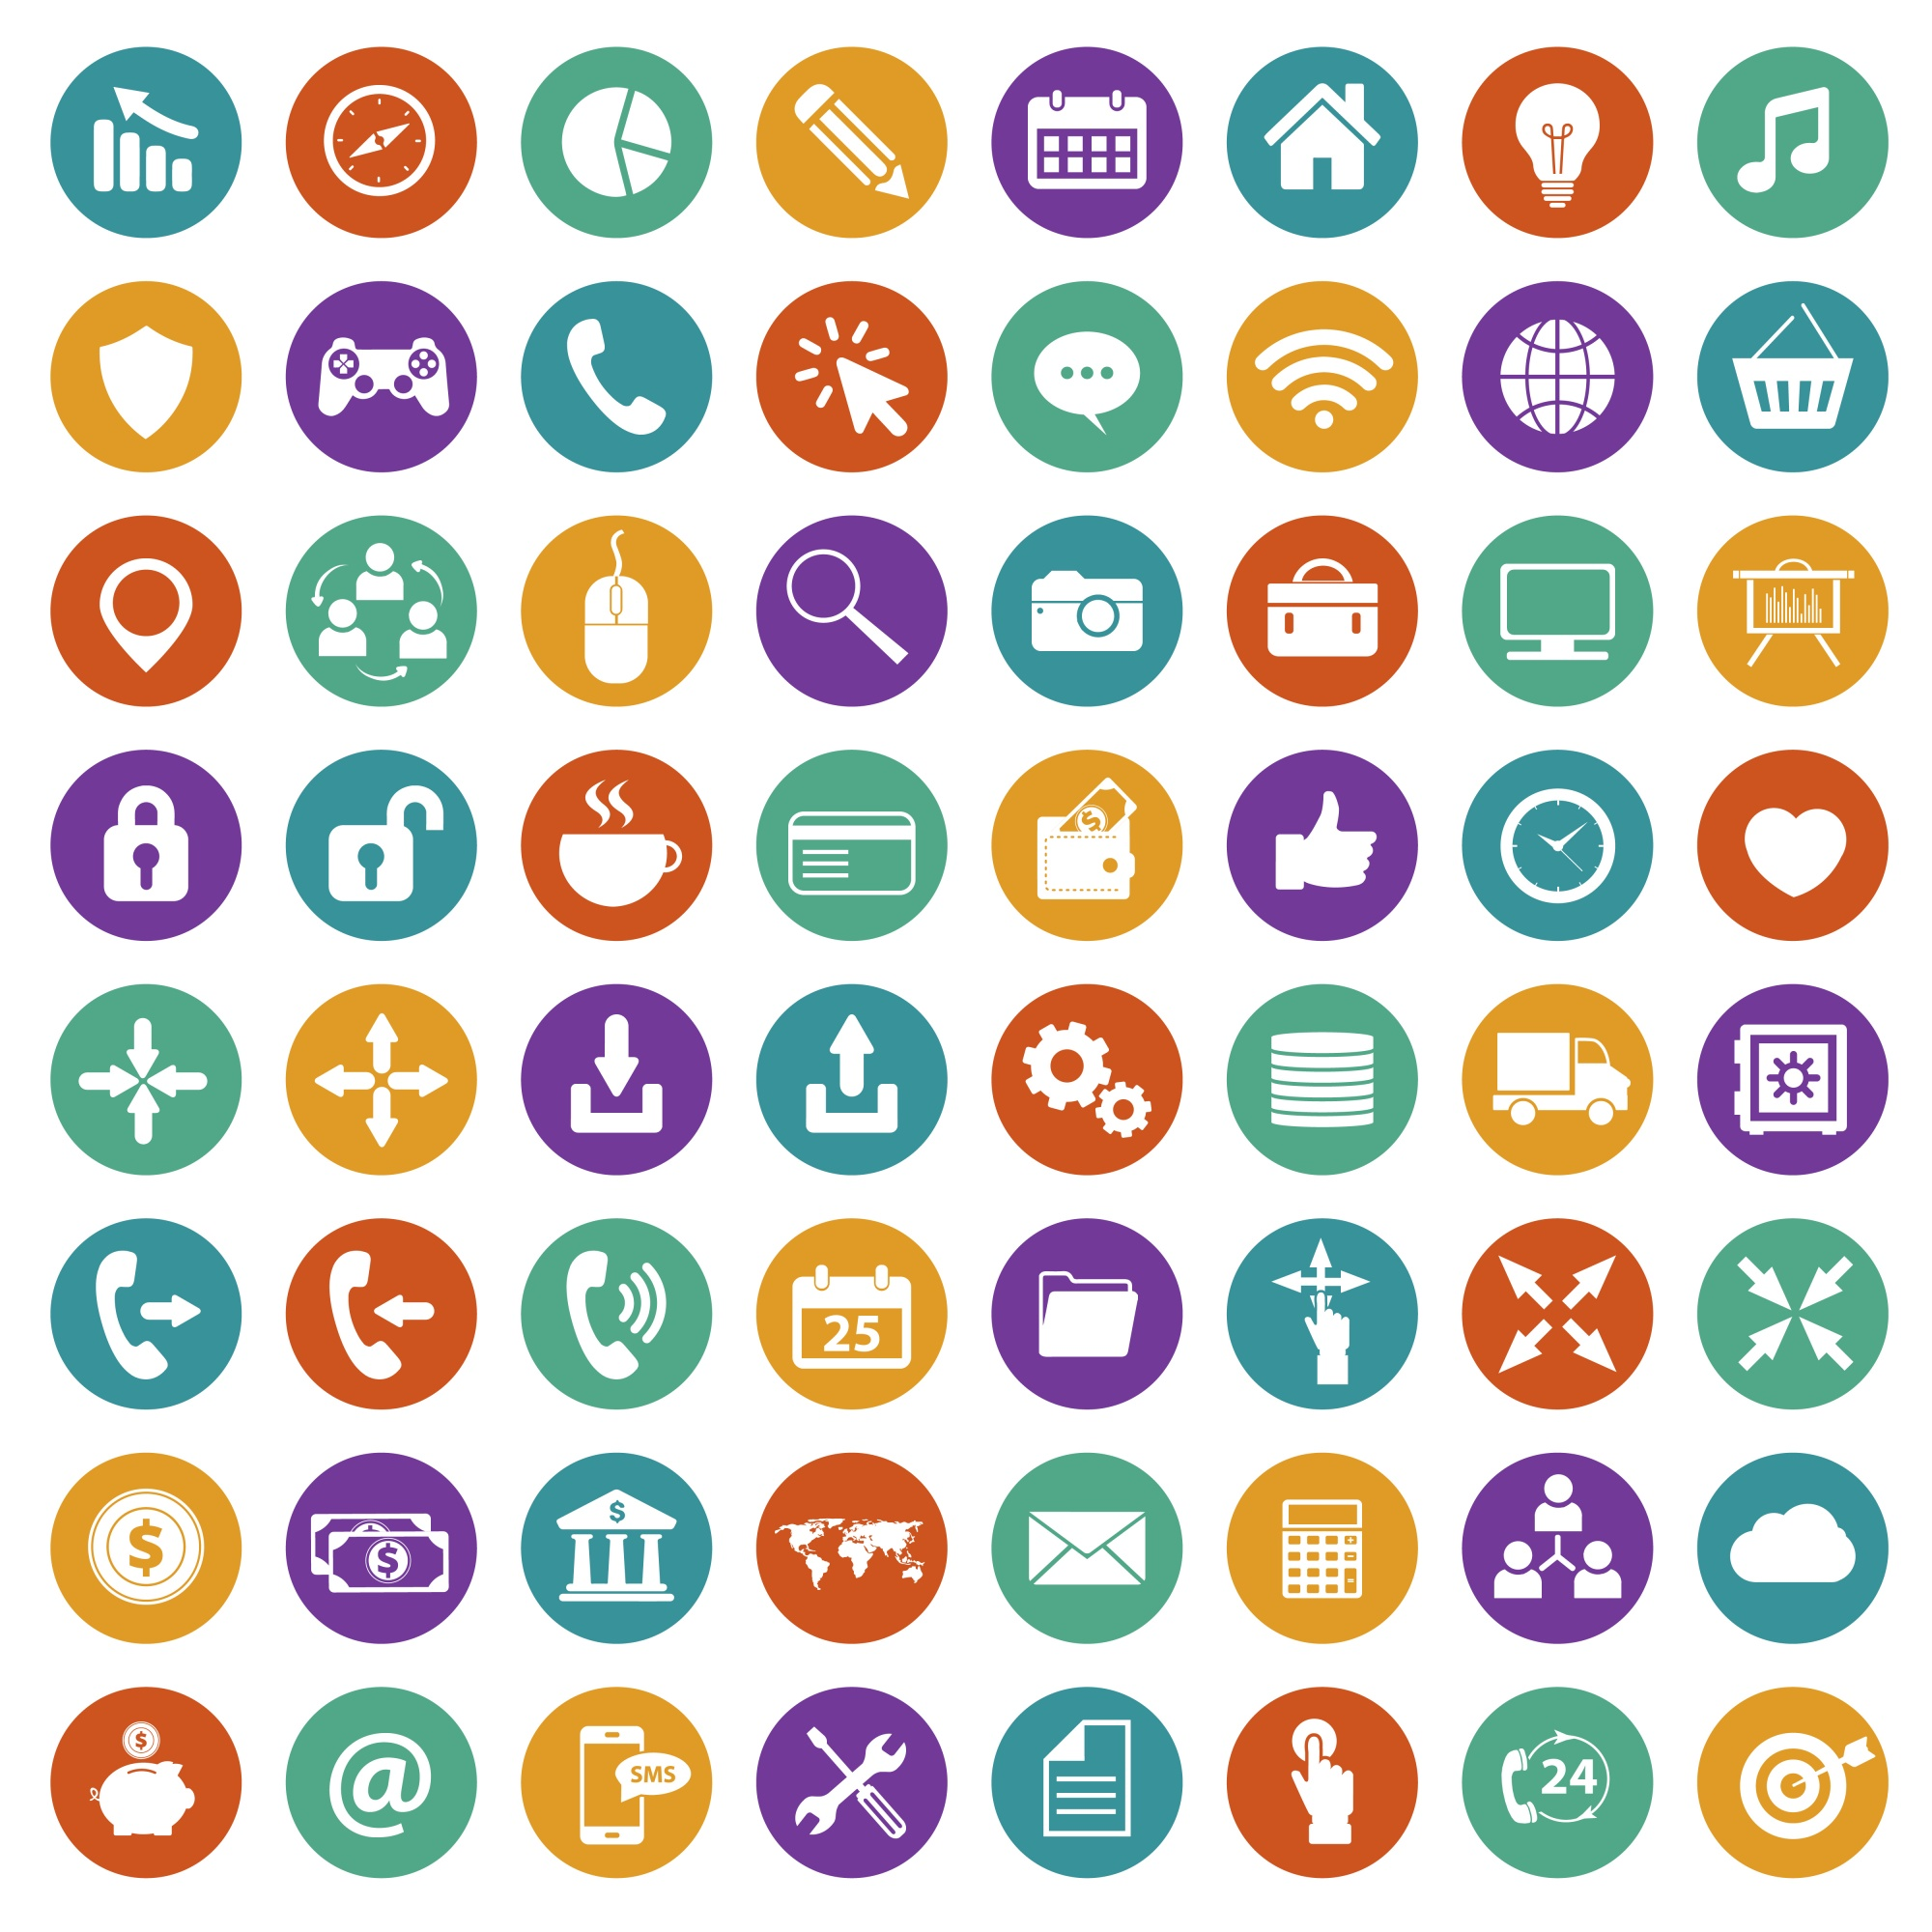 icons vectors 251200 free files in ai eps format